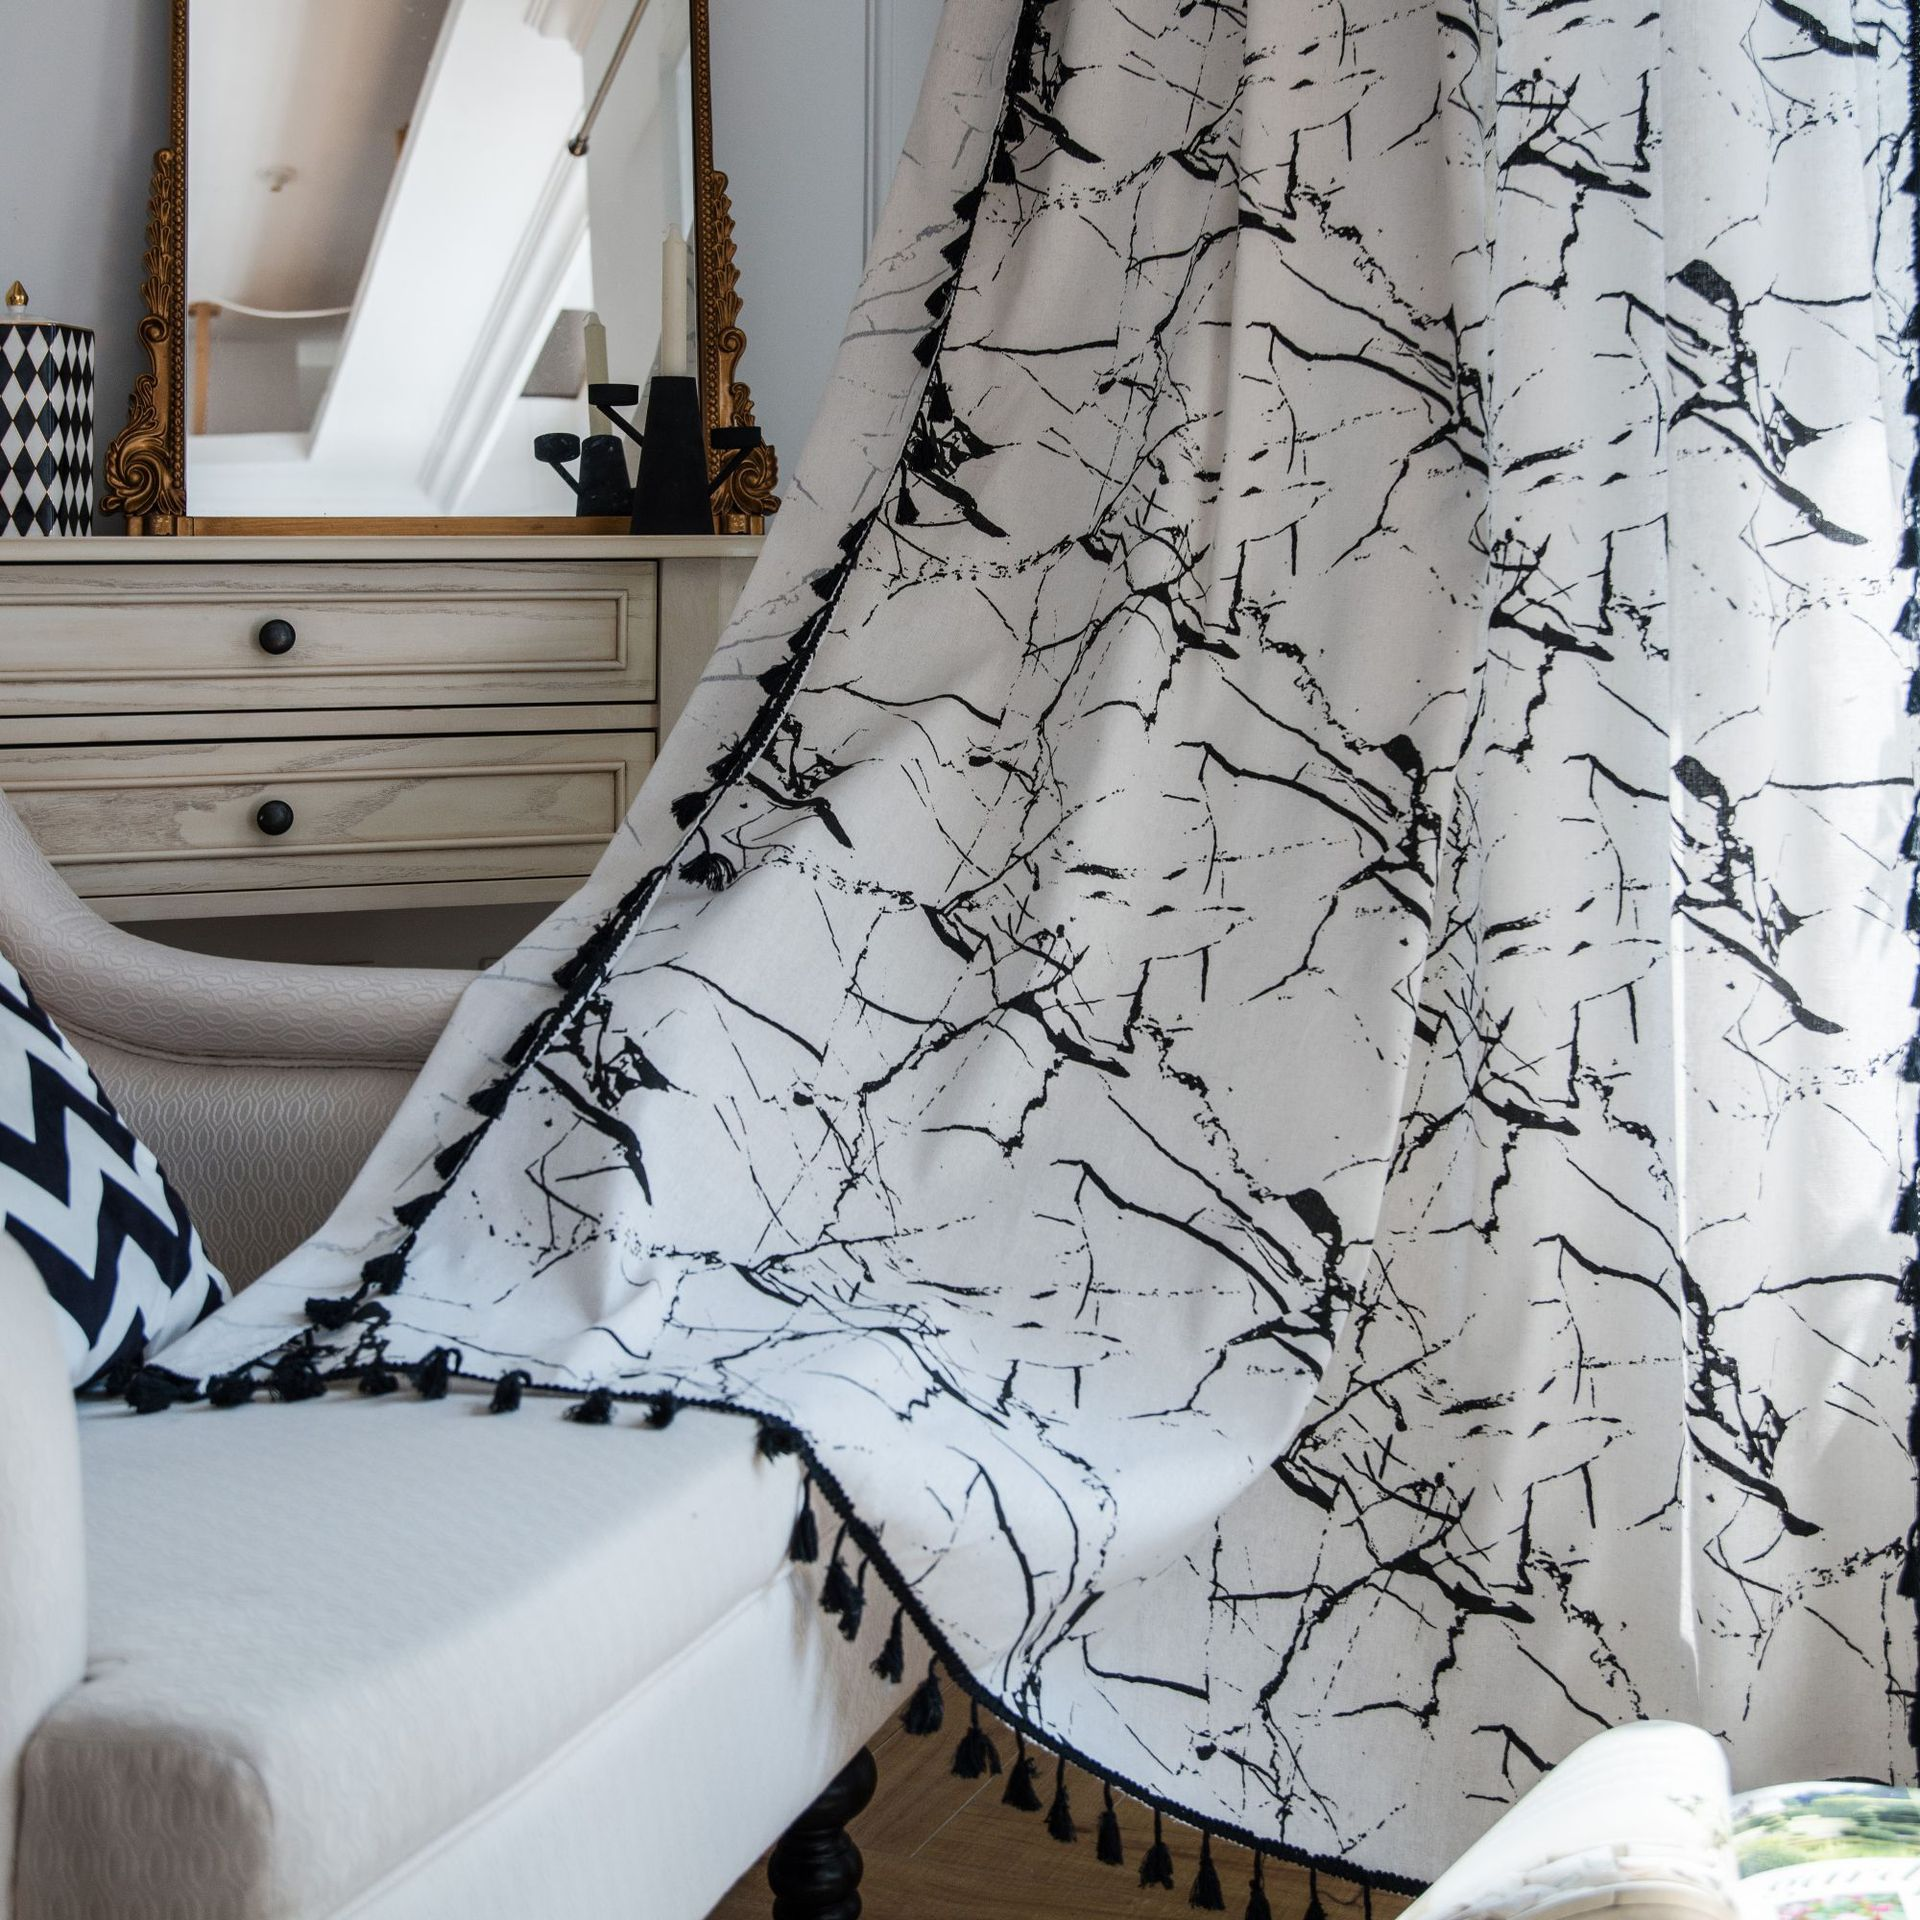 Modern White Marble Linen Curtains Black Lace For Living Room Bedroom Kitchen Window Kitchen Window Curtain Curtain Panel Curtains Aliexpress